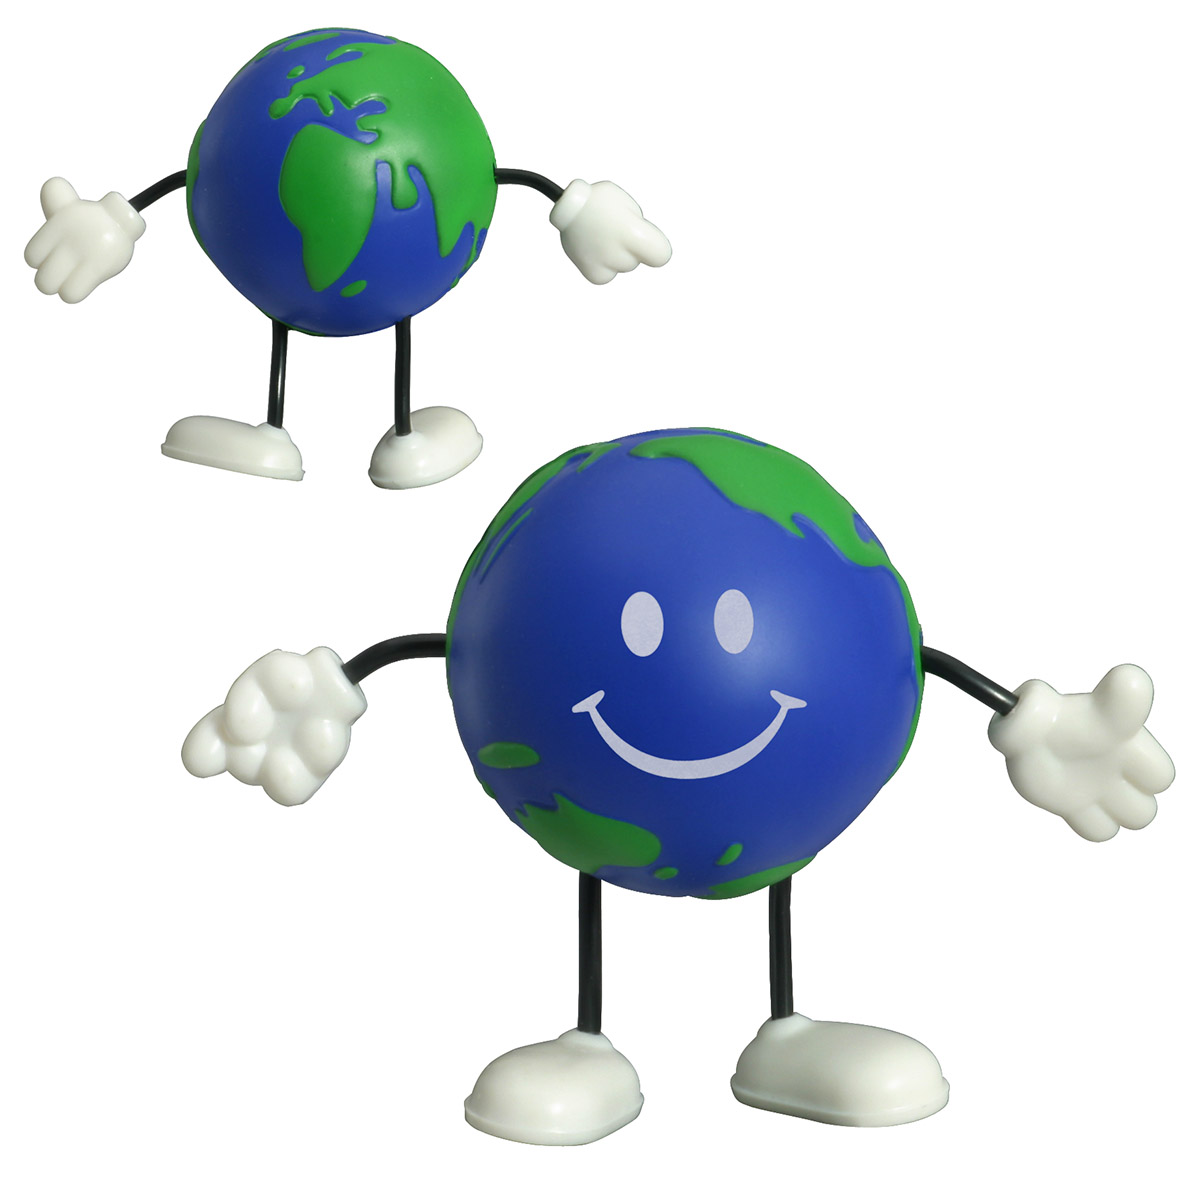 Earth Ball Figure Stress Reliever, LCH-EB01 - 1 Colour Imprint